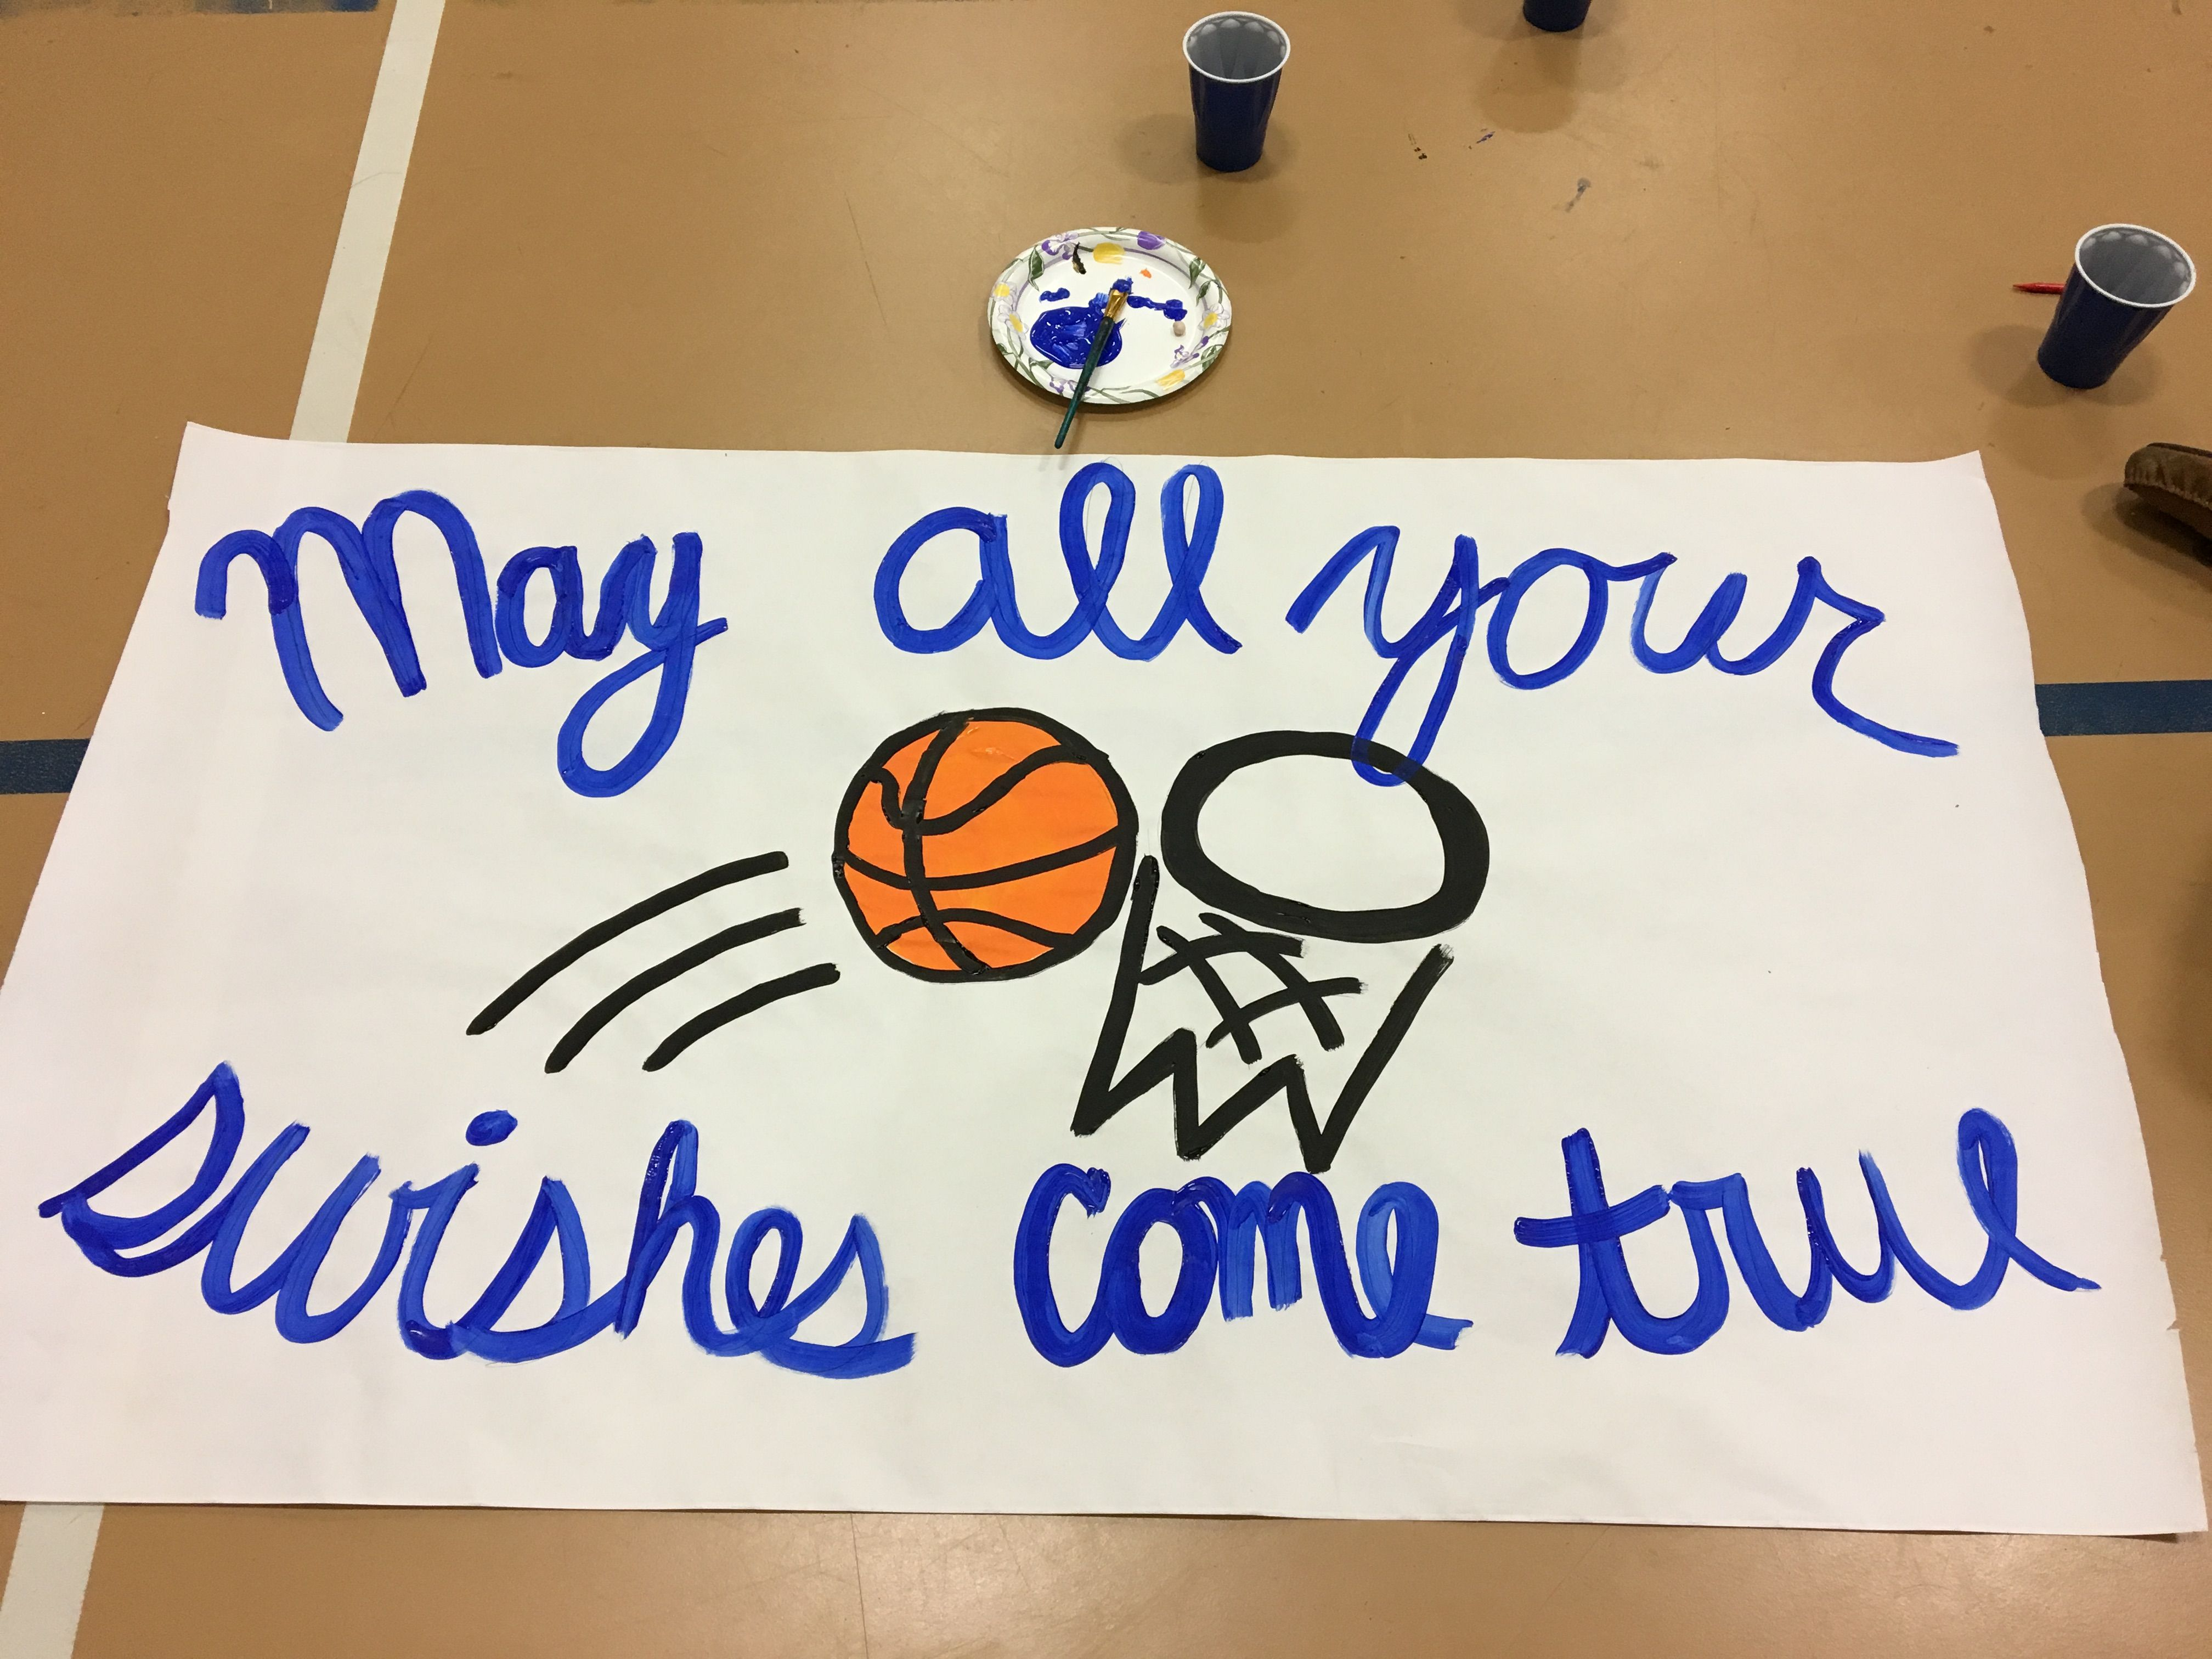 2a9ff6e4ea0d3 May all your swishes come true, basketball sign, cheer sign ...